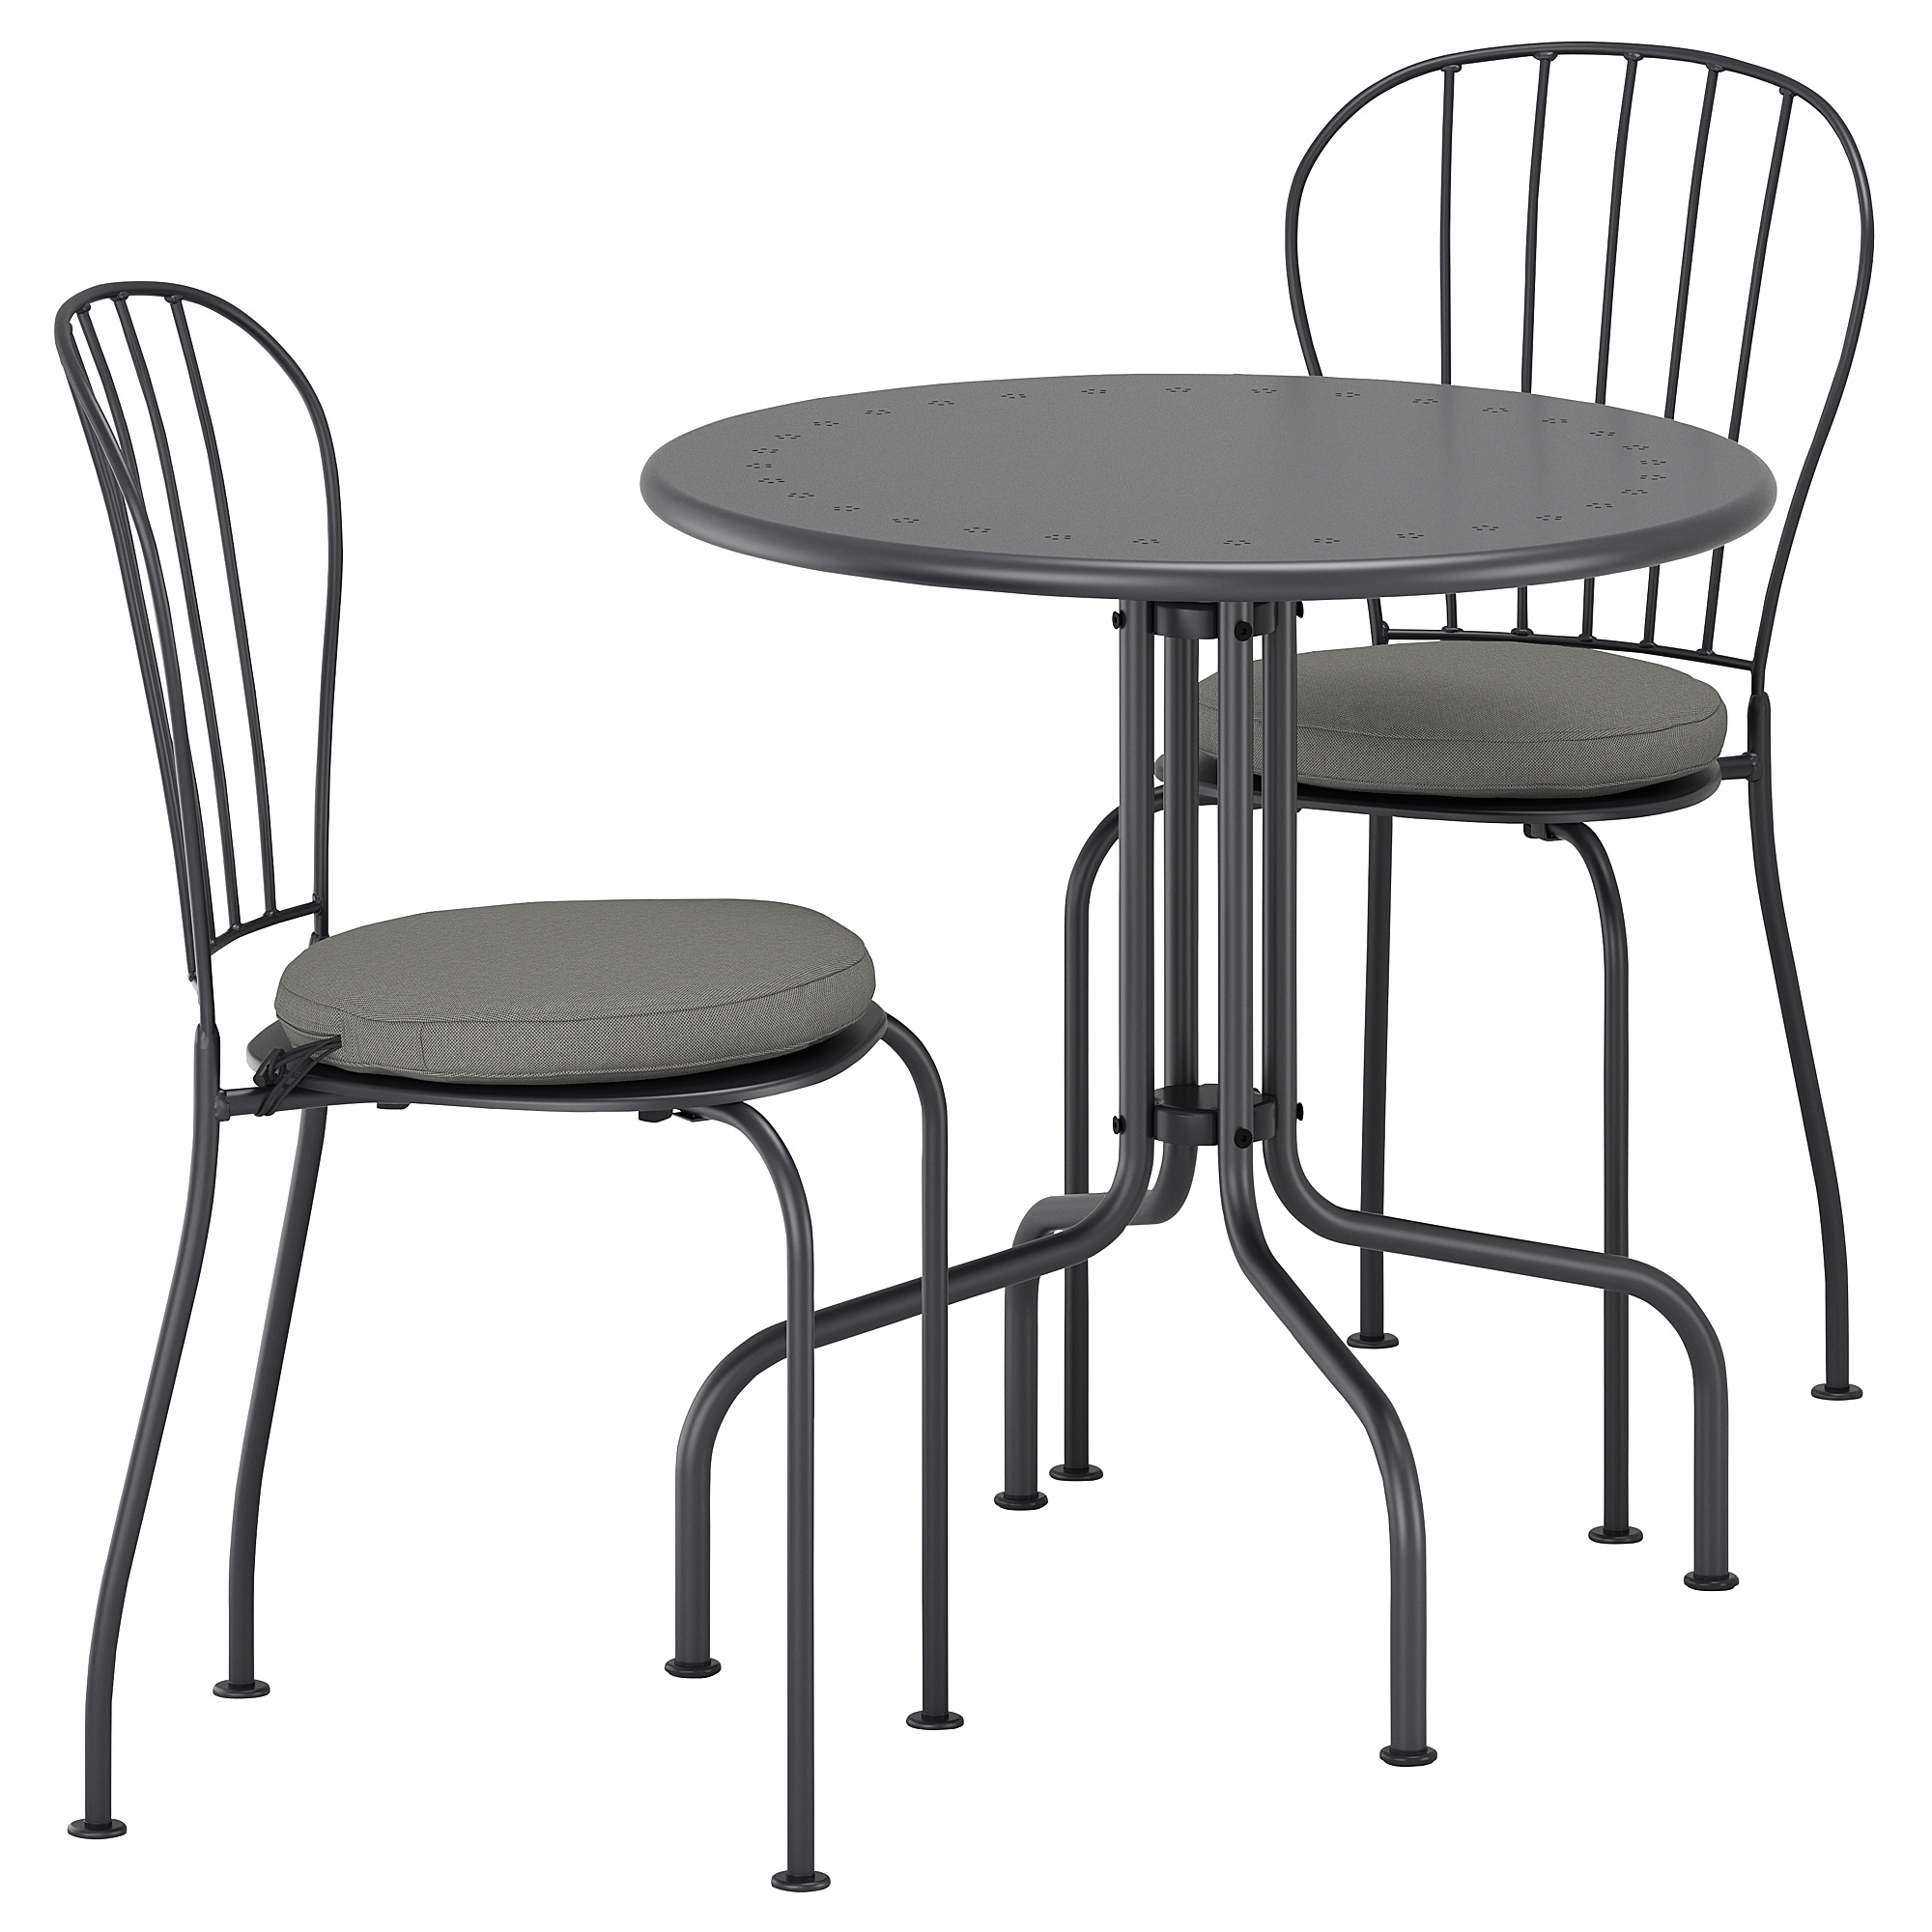 LACKO Table 2 Chairs Outdoor